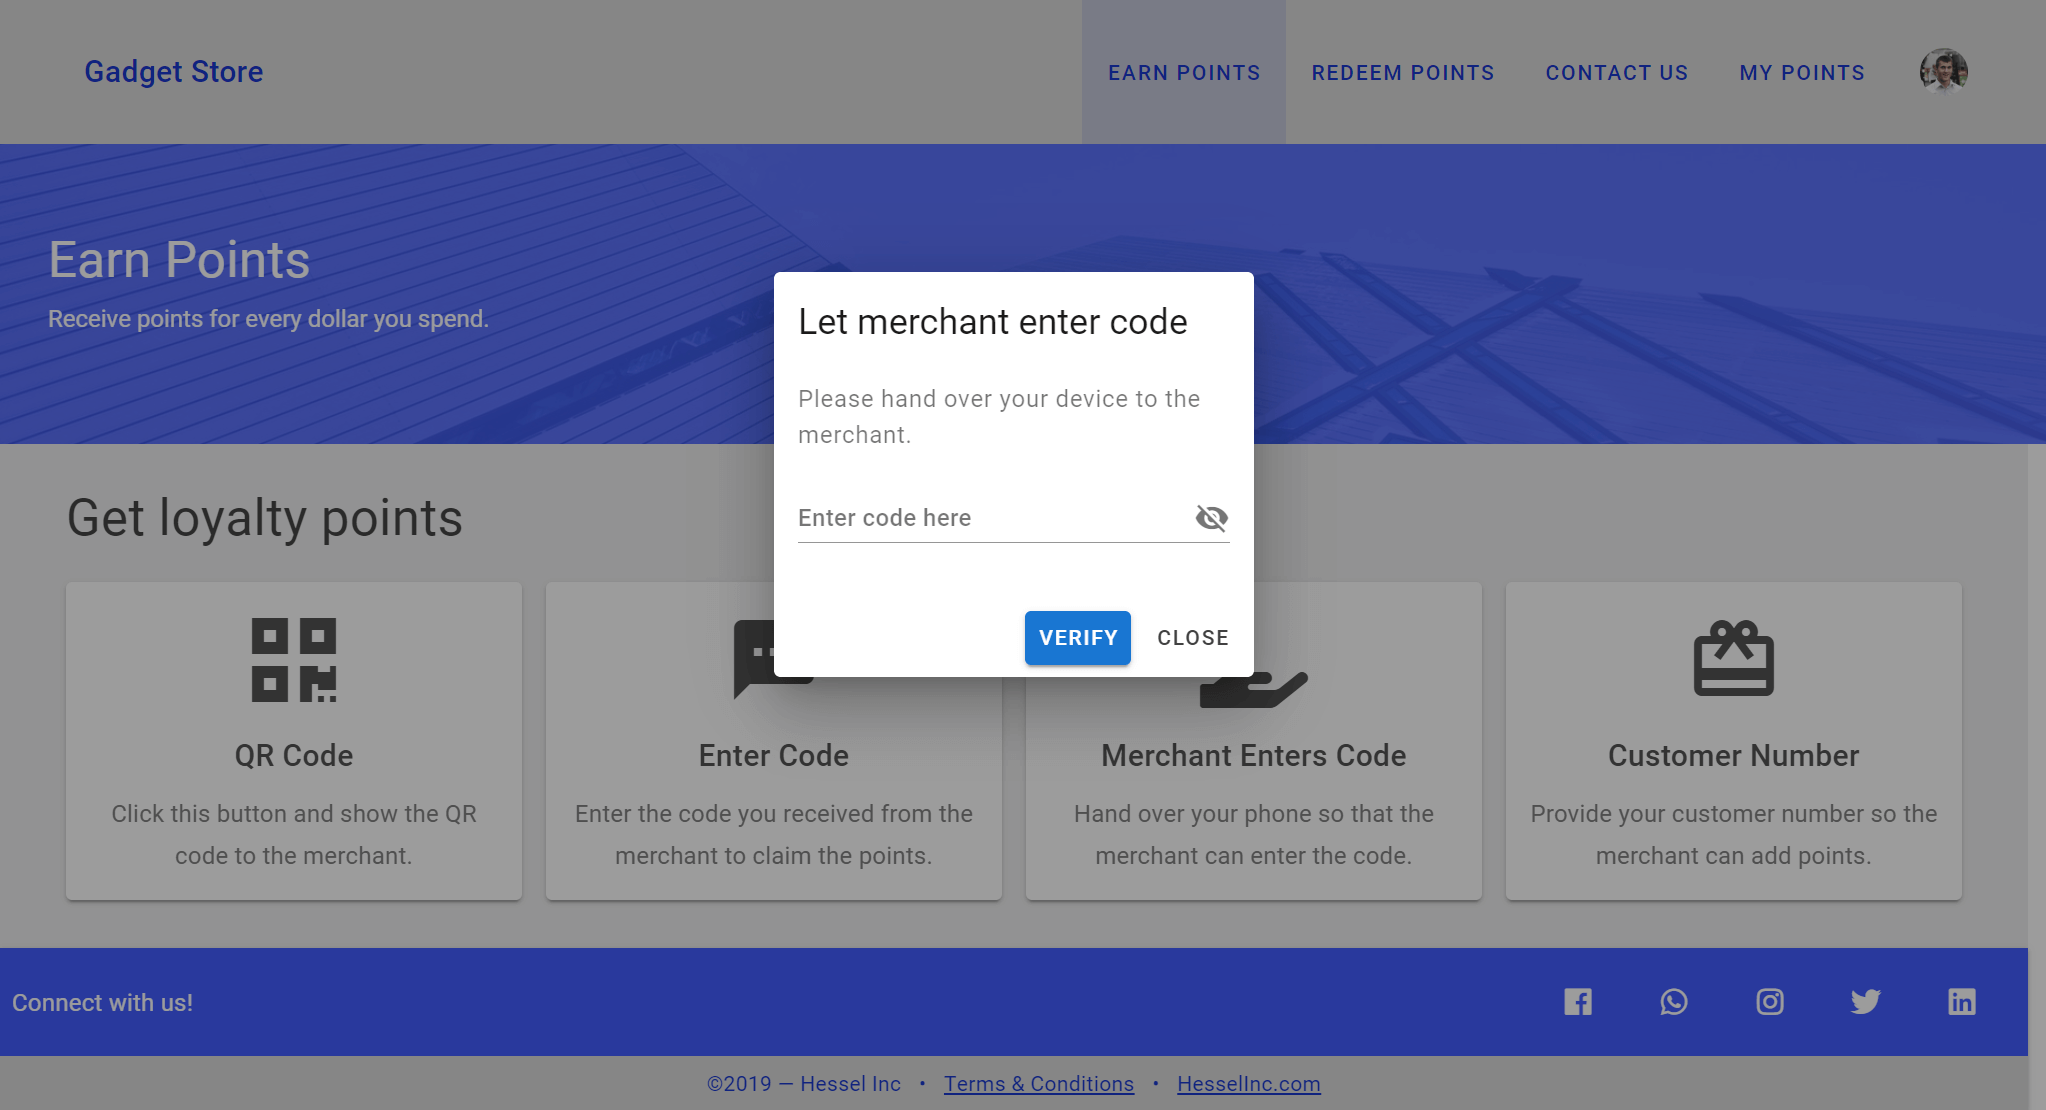 Customer - Earn Points - Merchant Enters Code